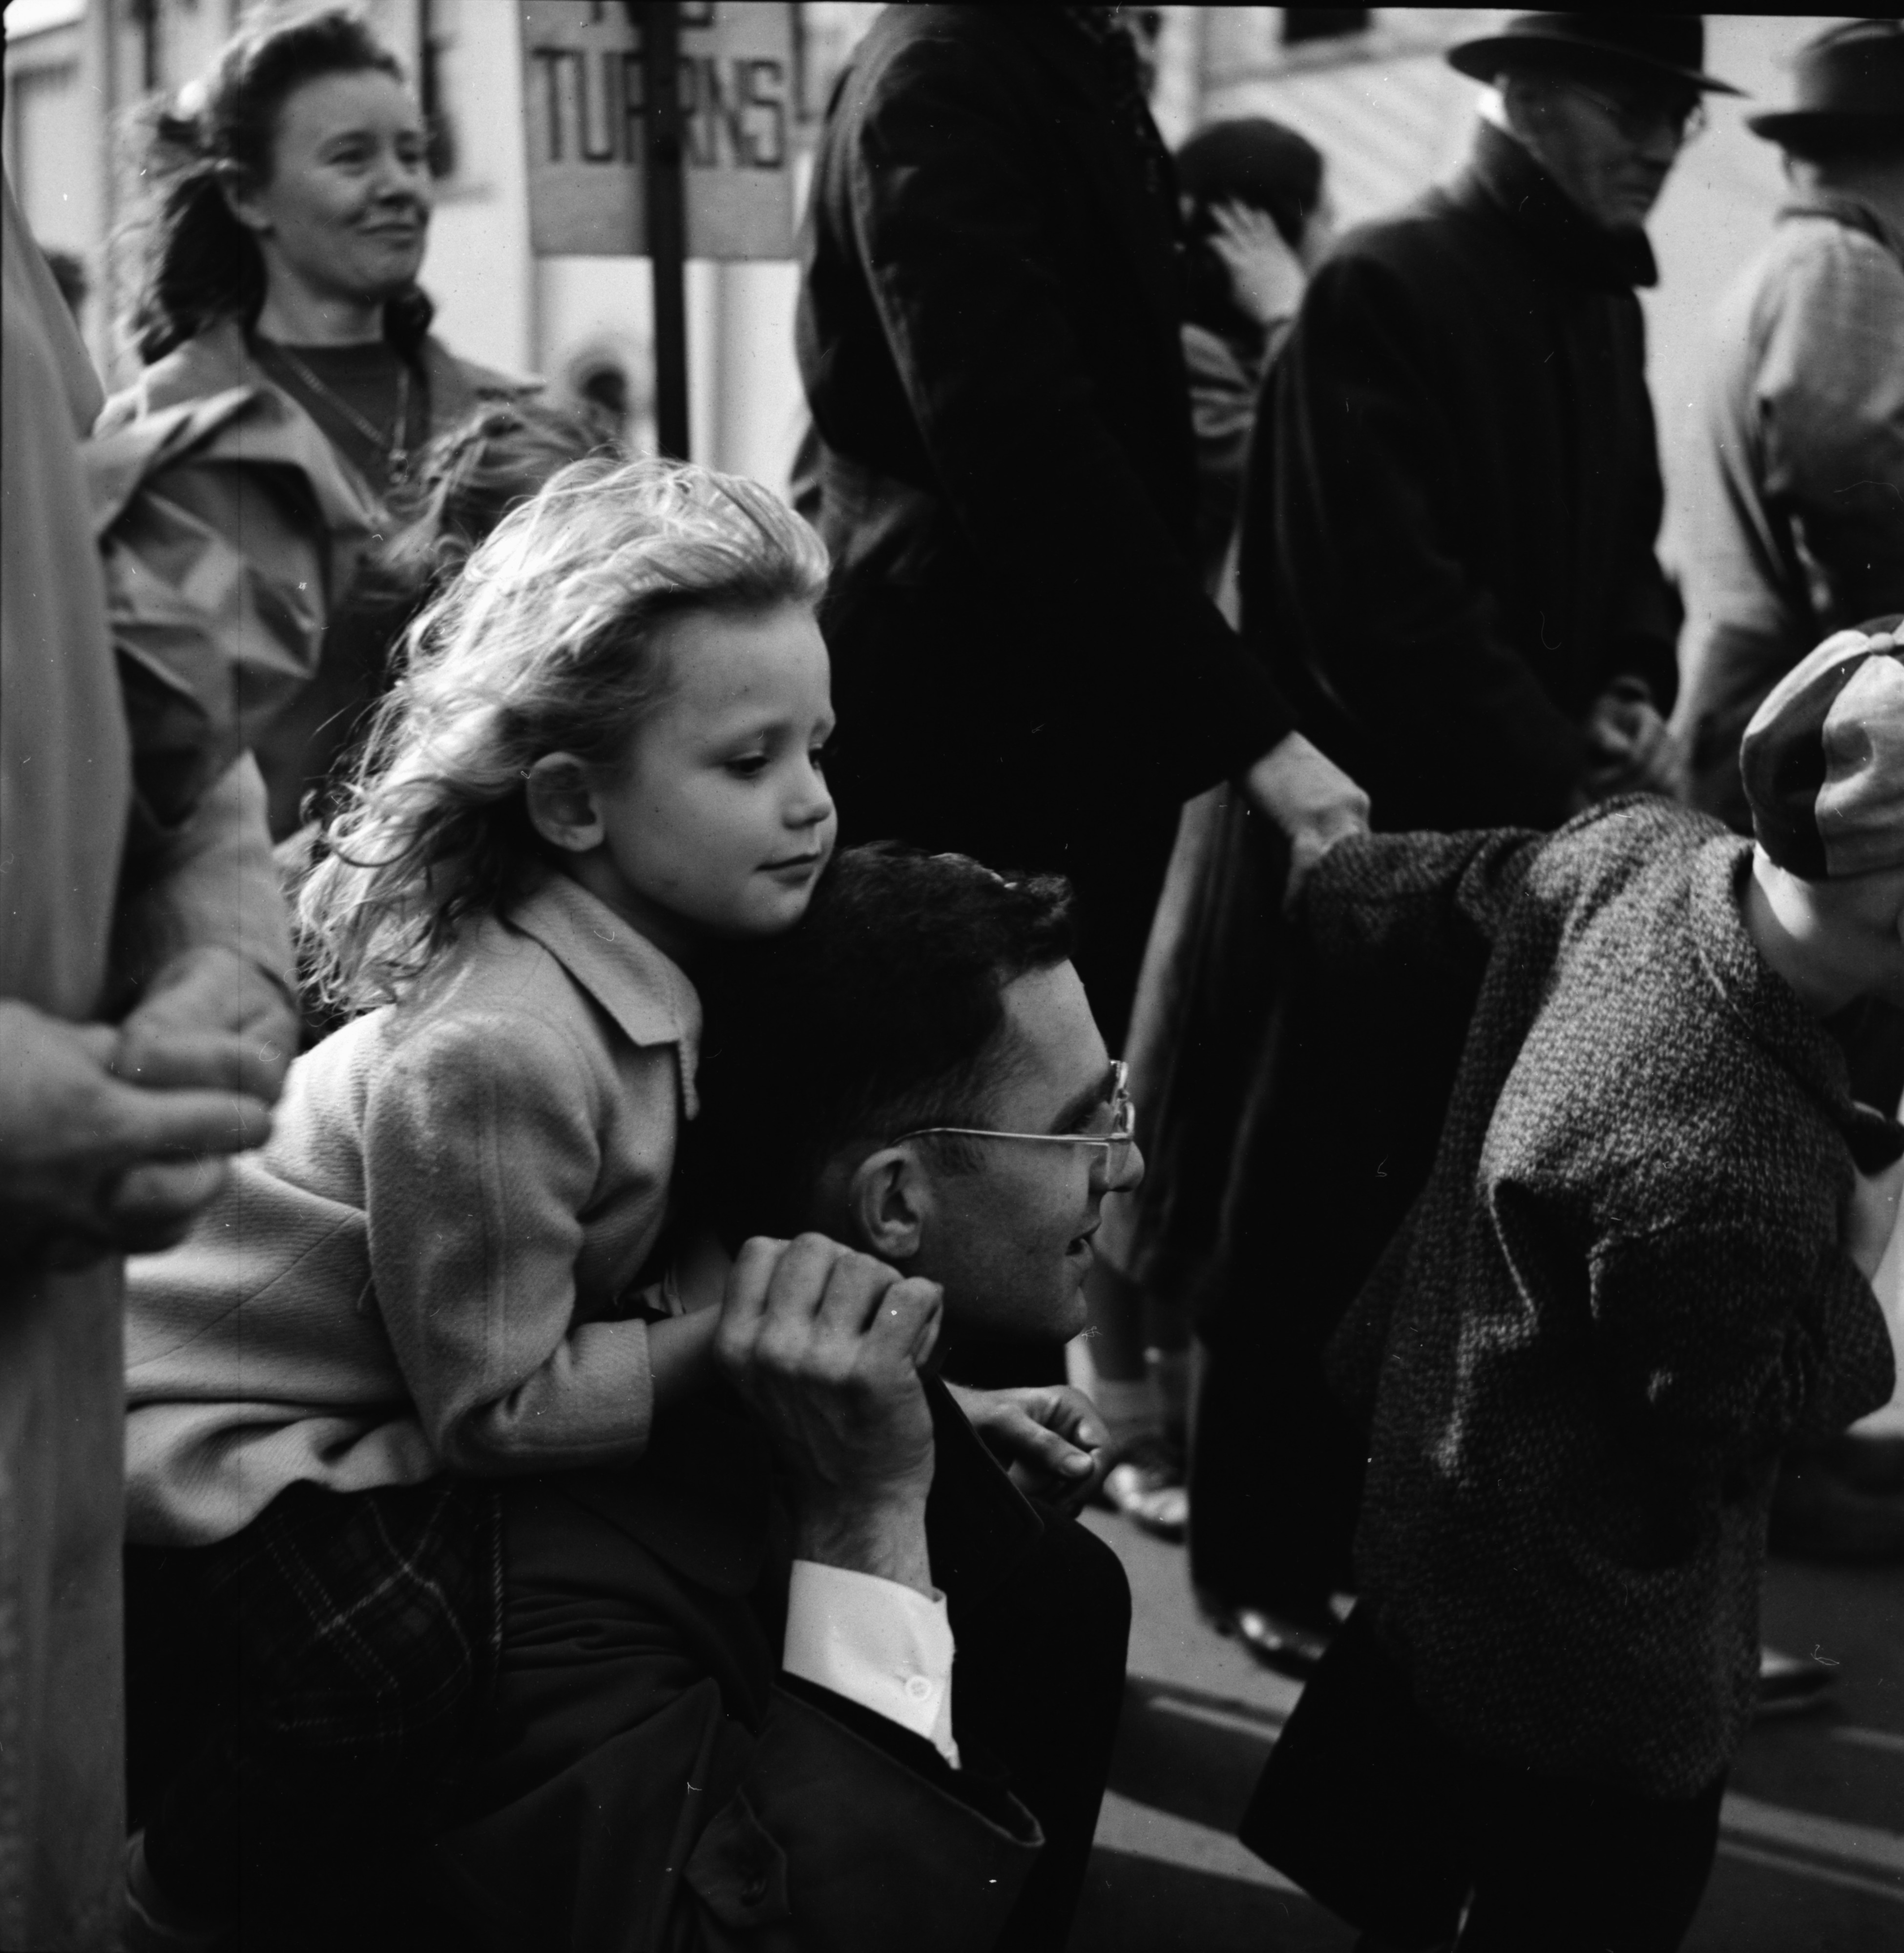 A Little Girl Watches the U-M Michigras Parade, April 1948 image